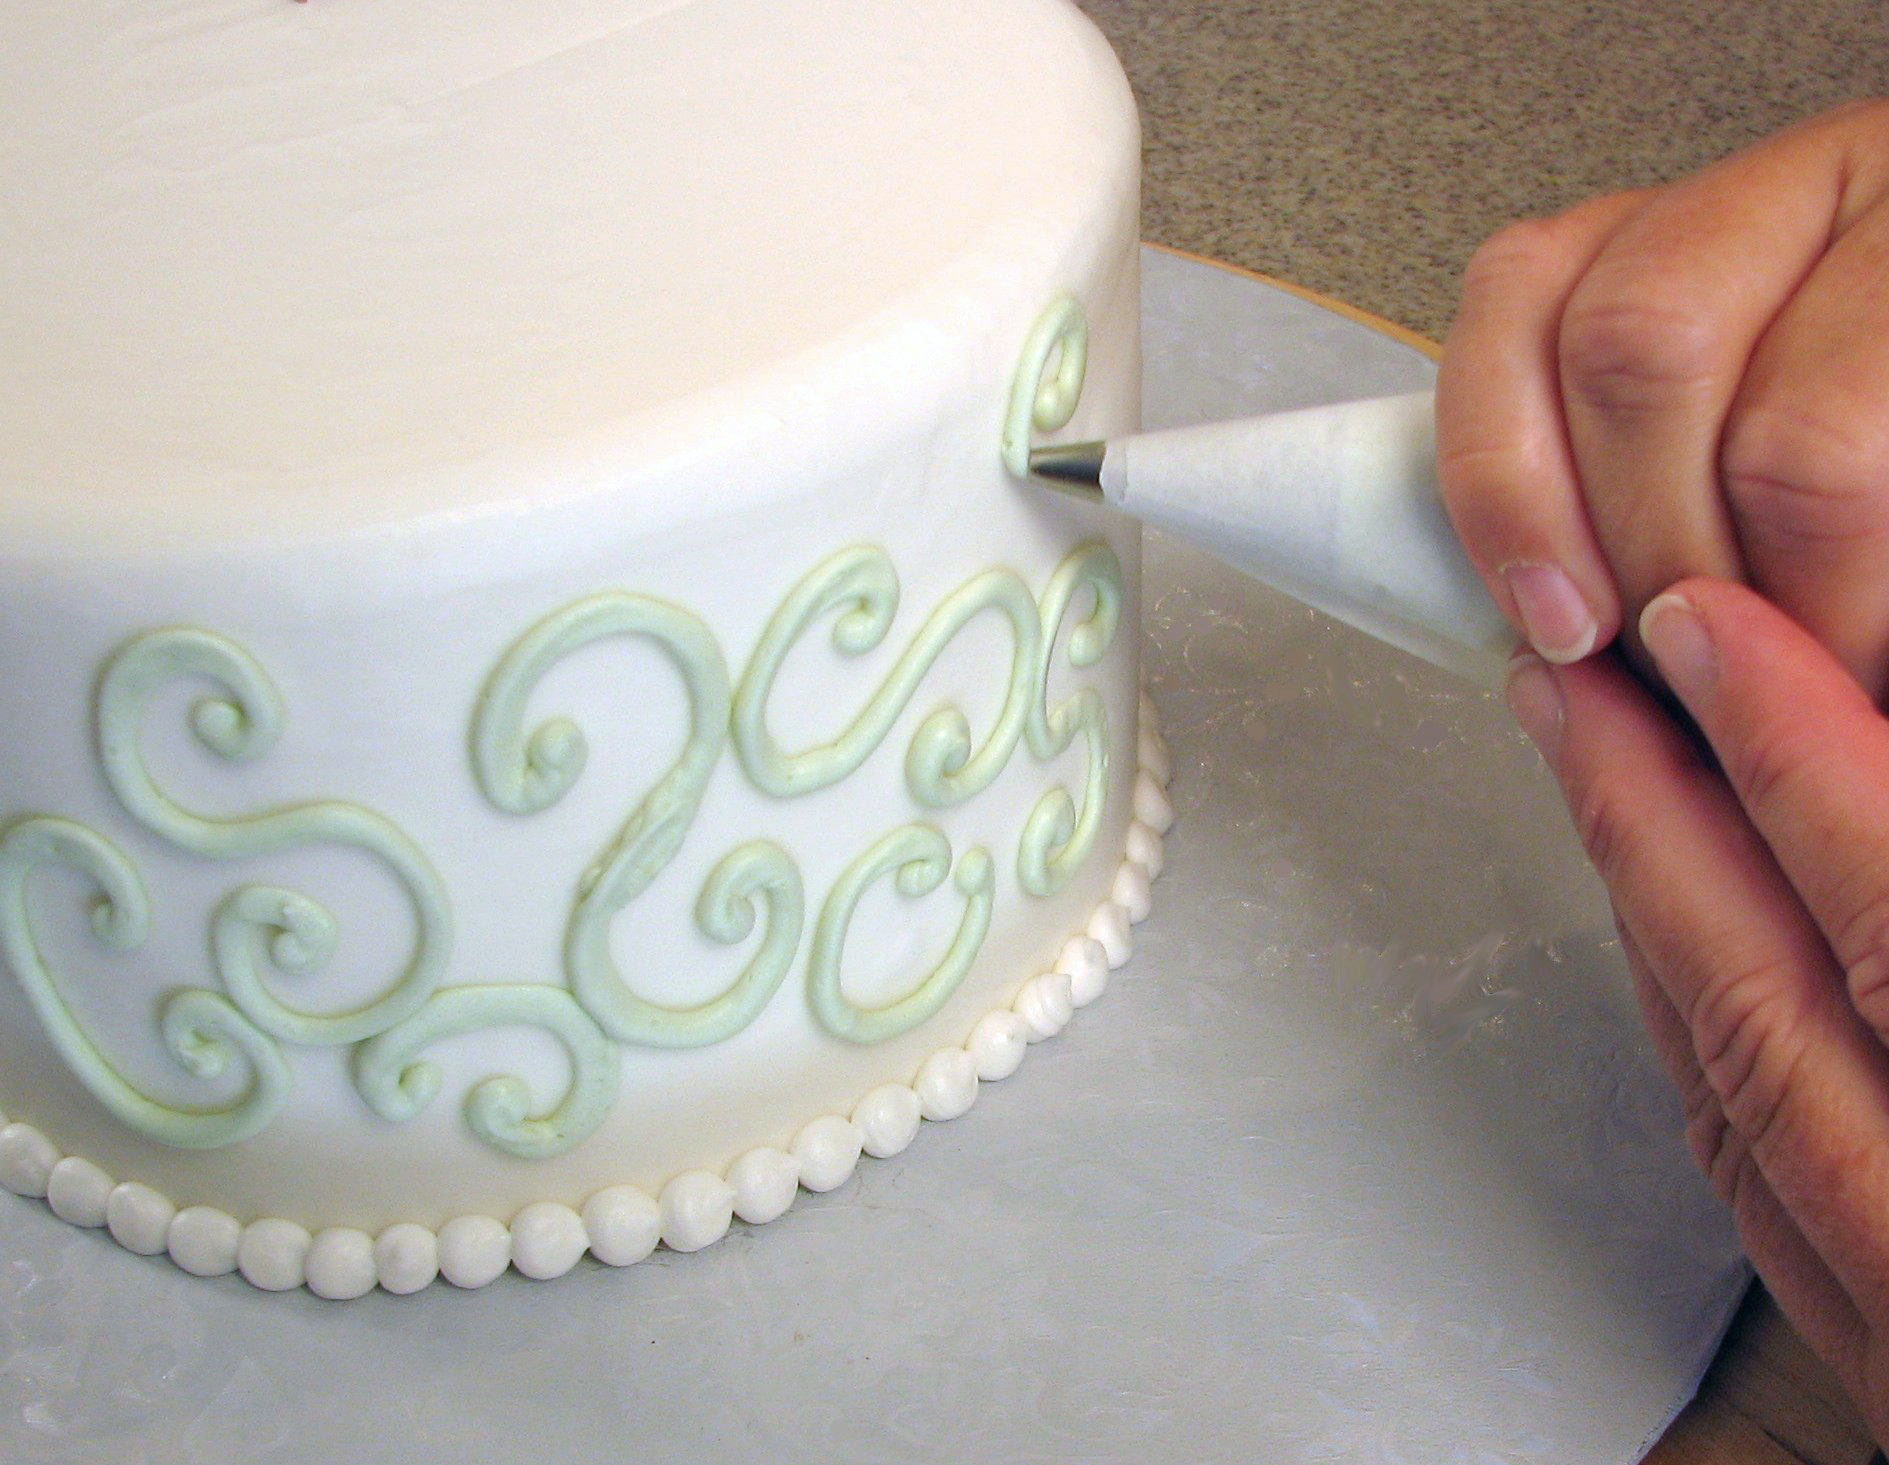 Decoration Ideas Of Cake : Cake decorating - Wikipedia